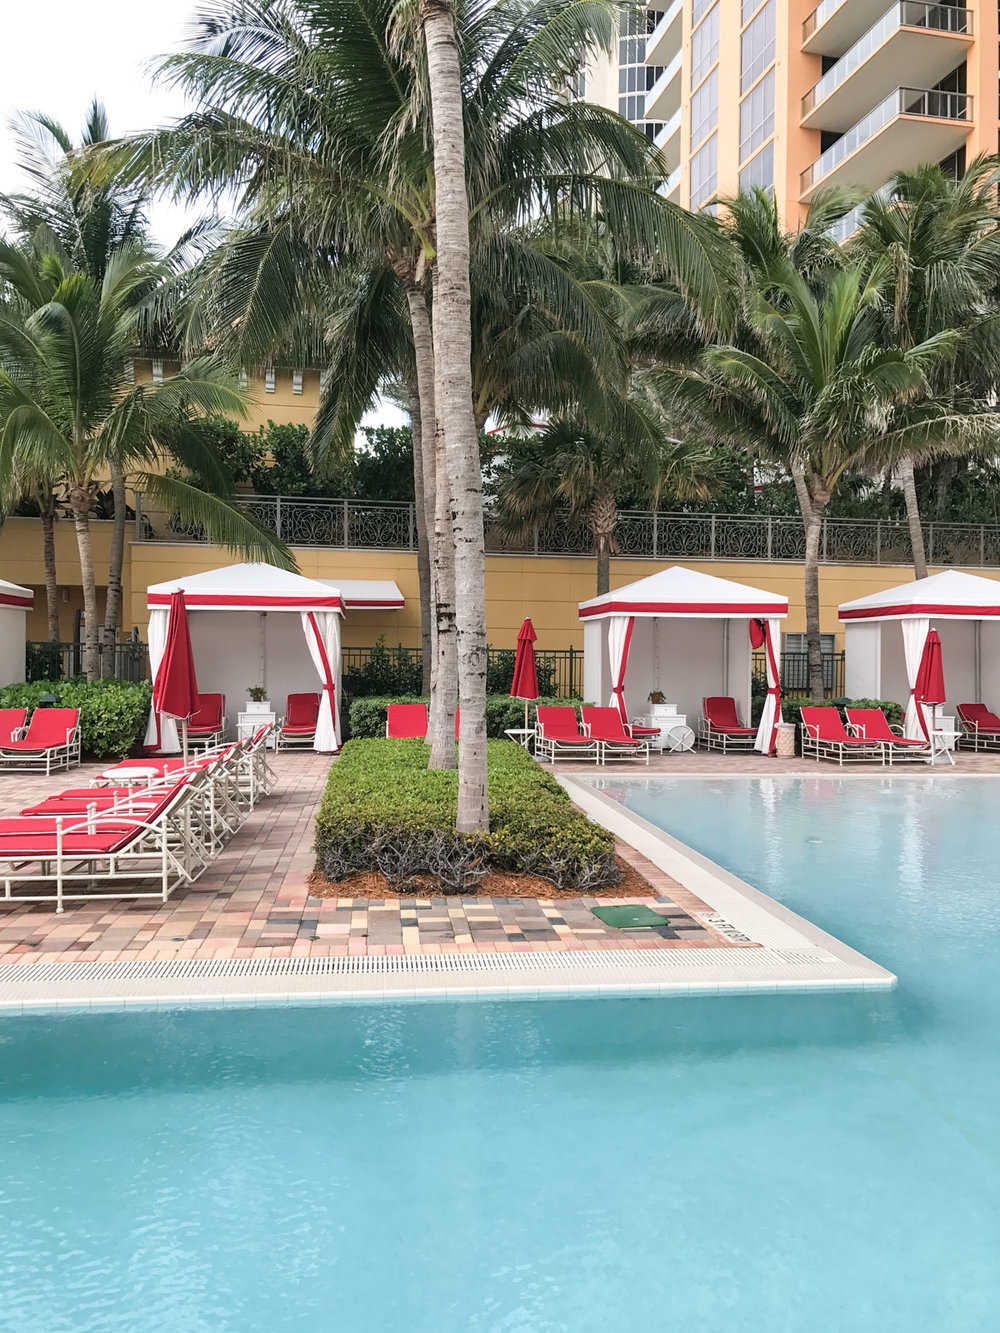 Acqualina Resort Reviews_AddieBell_Best_US_Getaway-8527.jpg